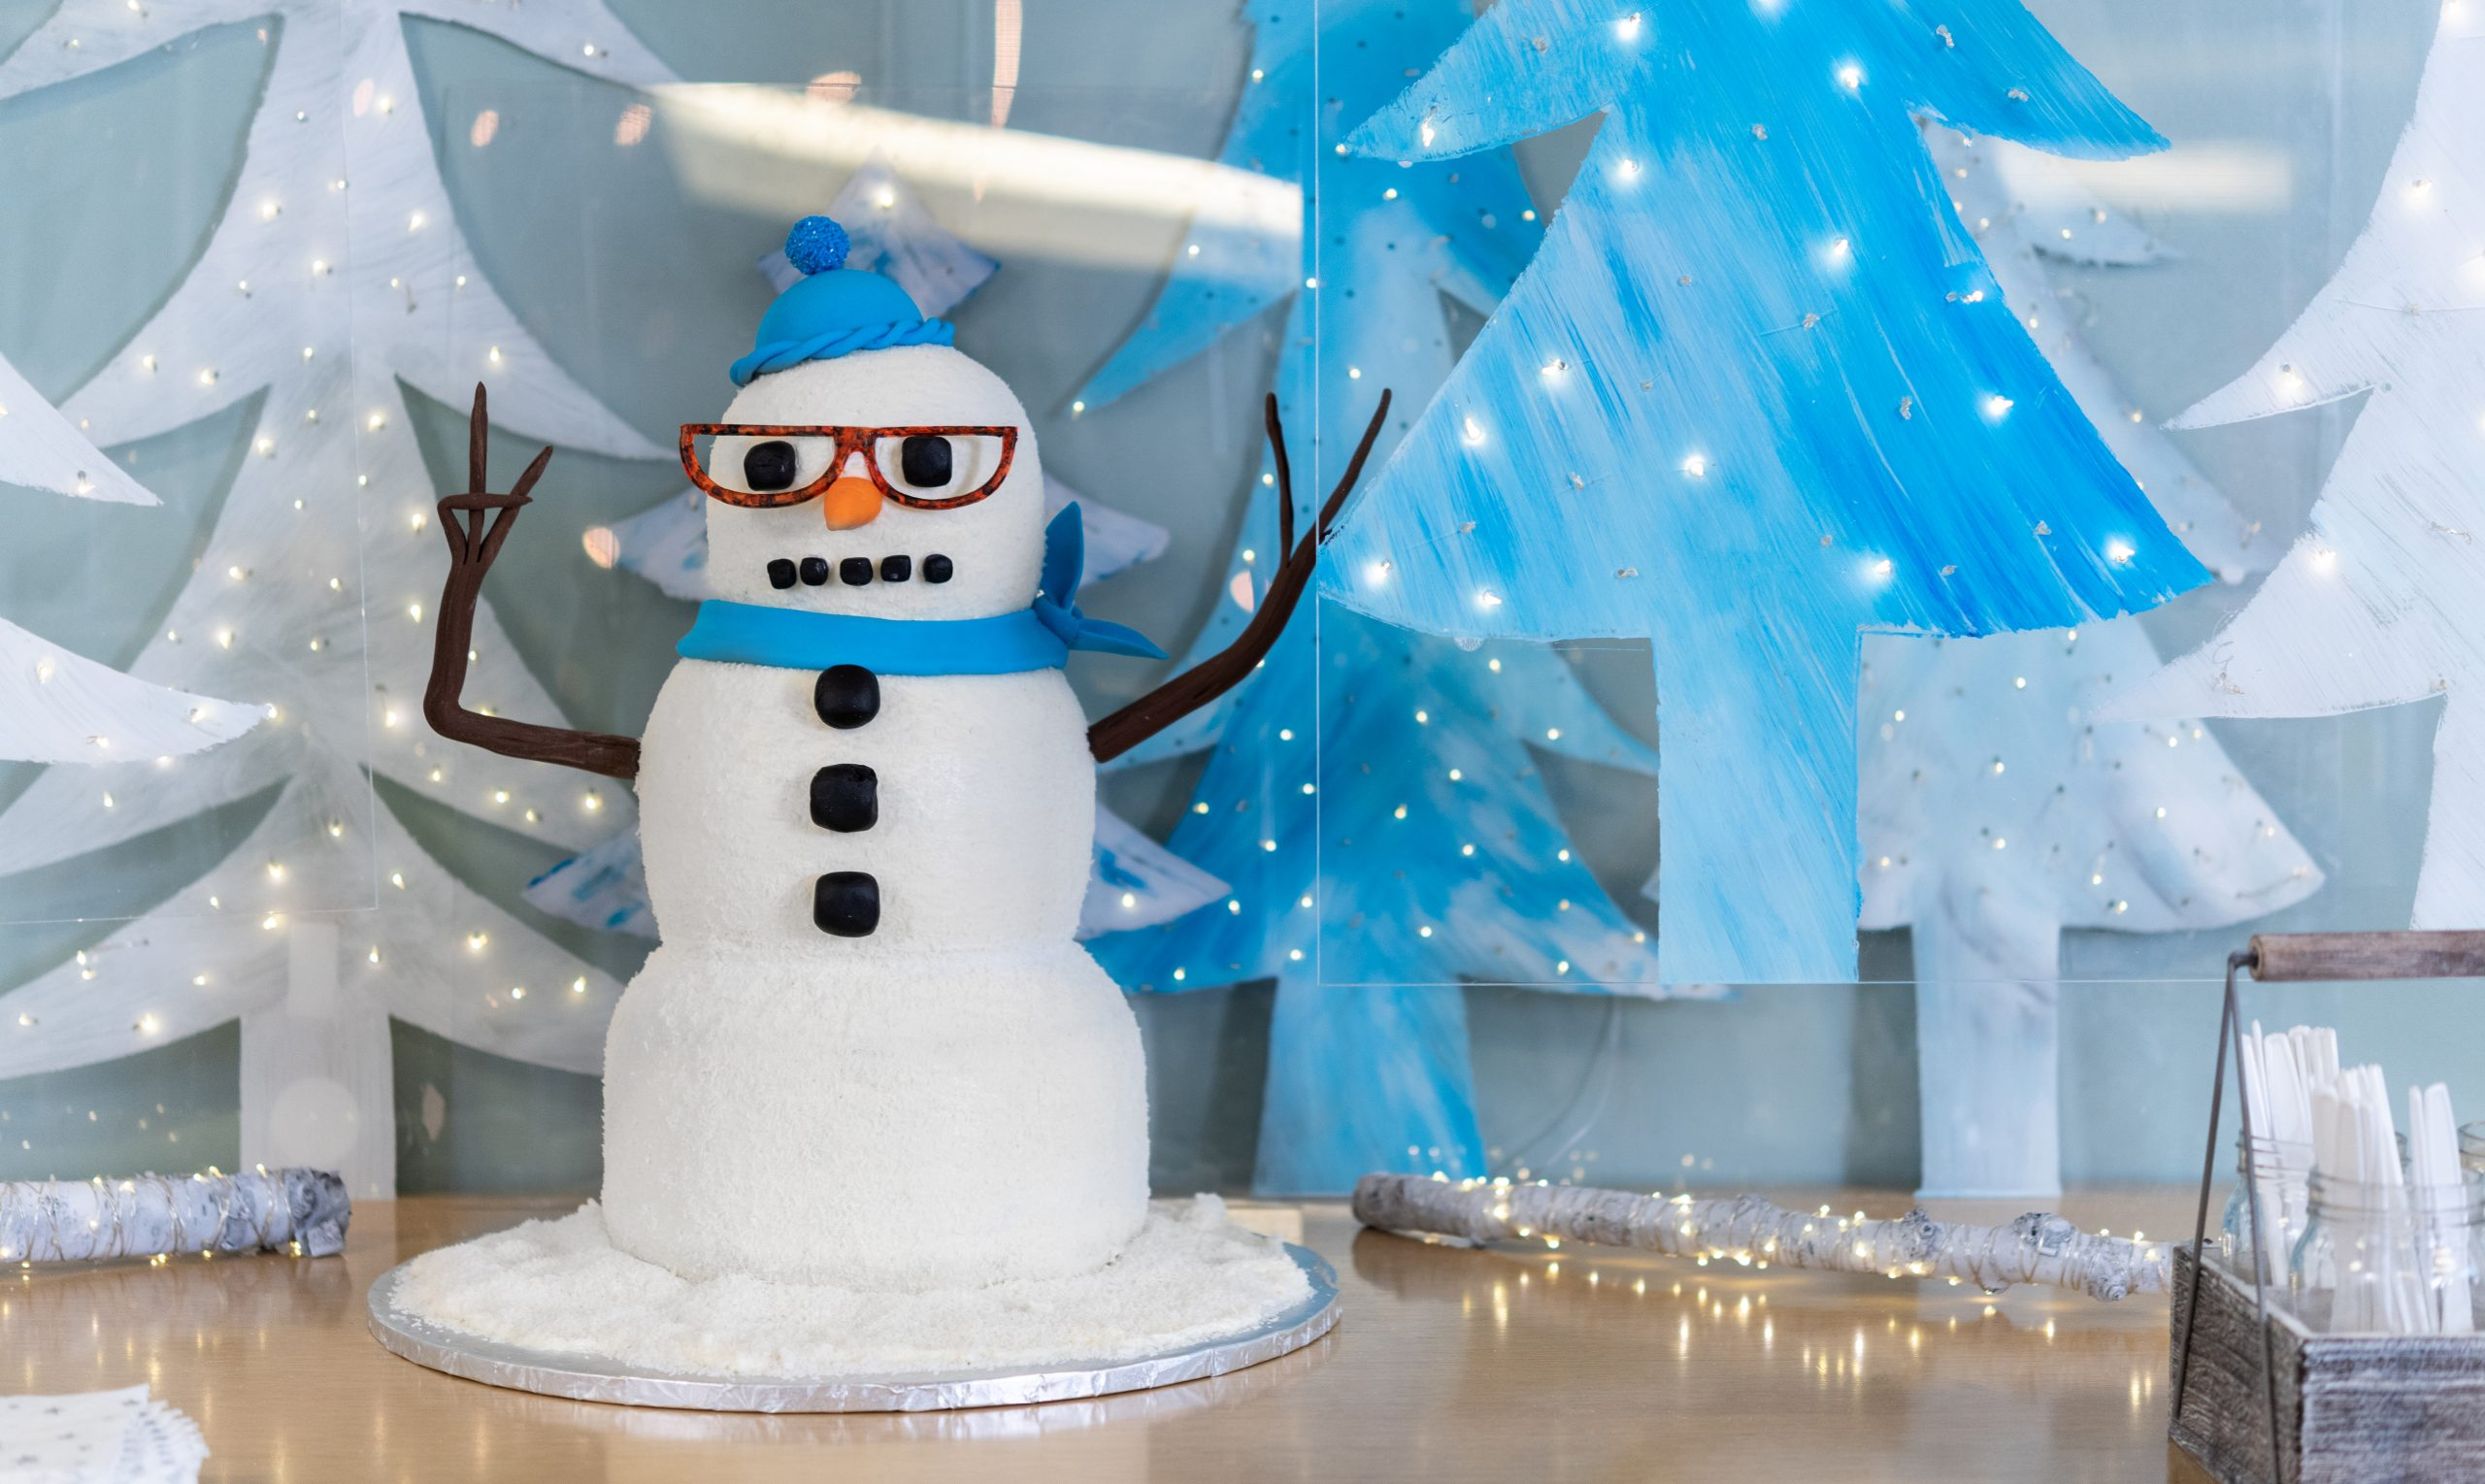 three tiered snowman cake with glasses a hat and scarf